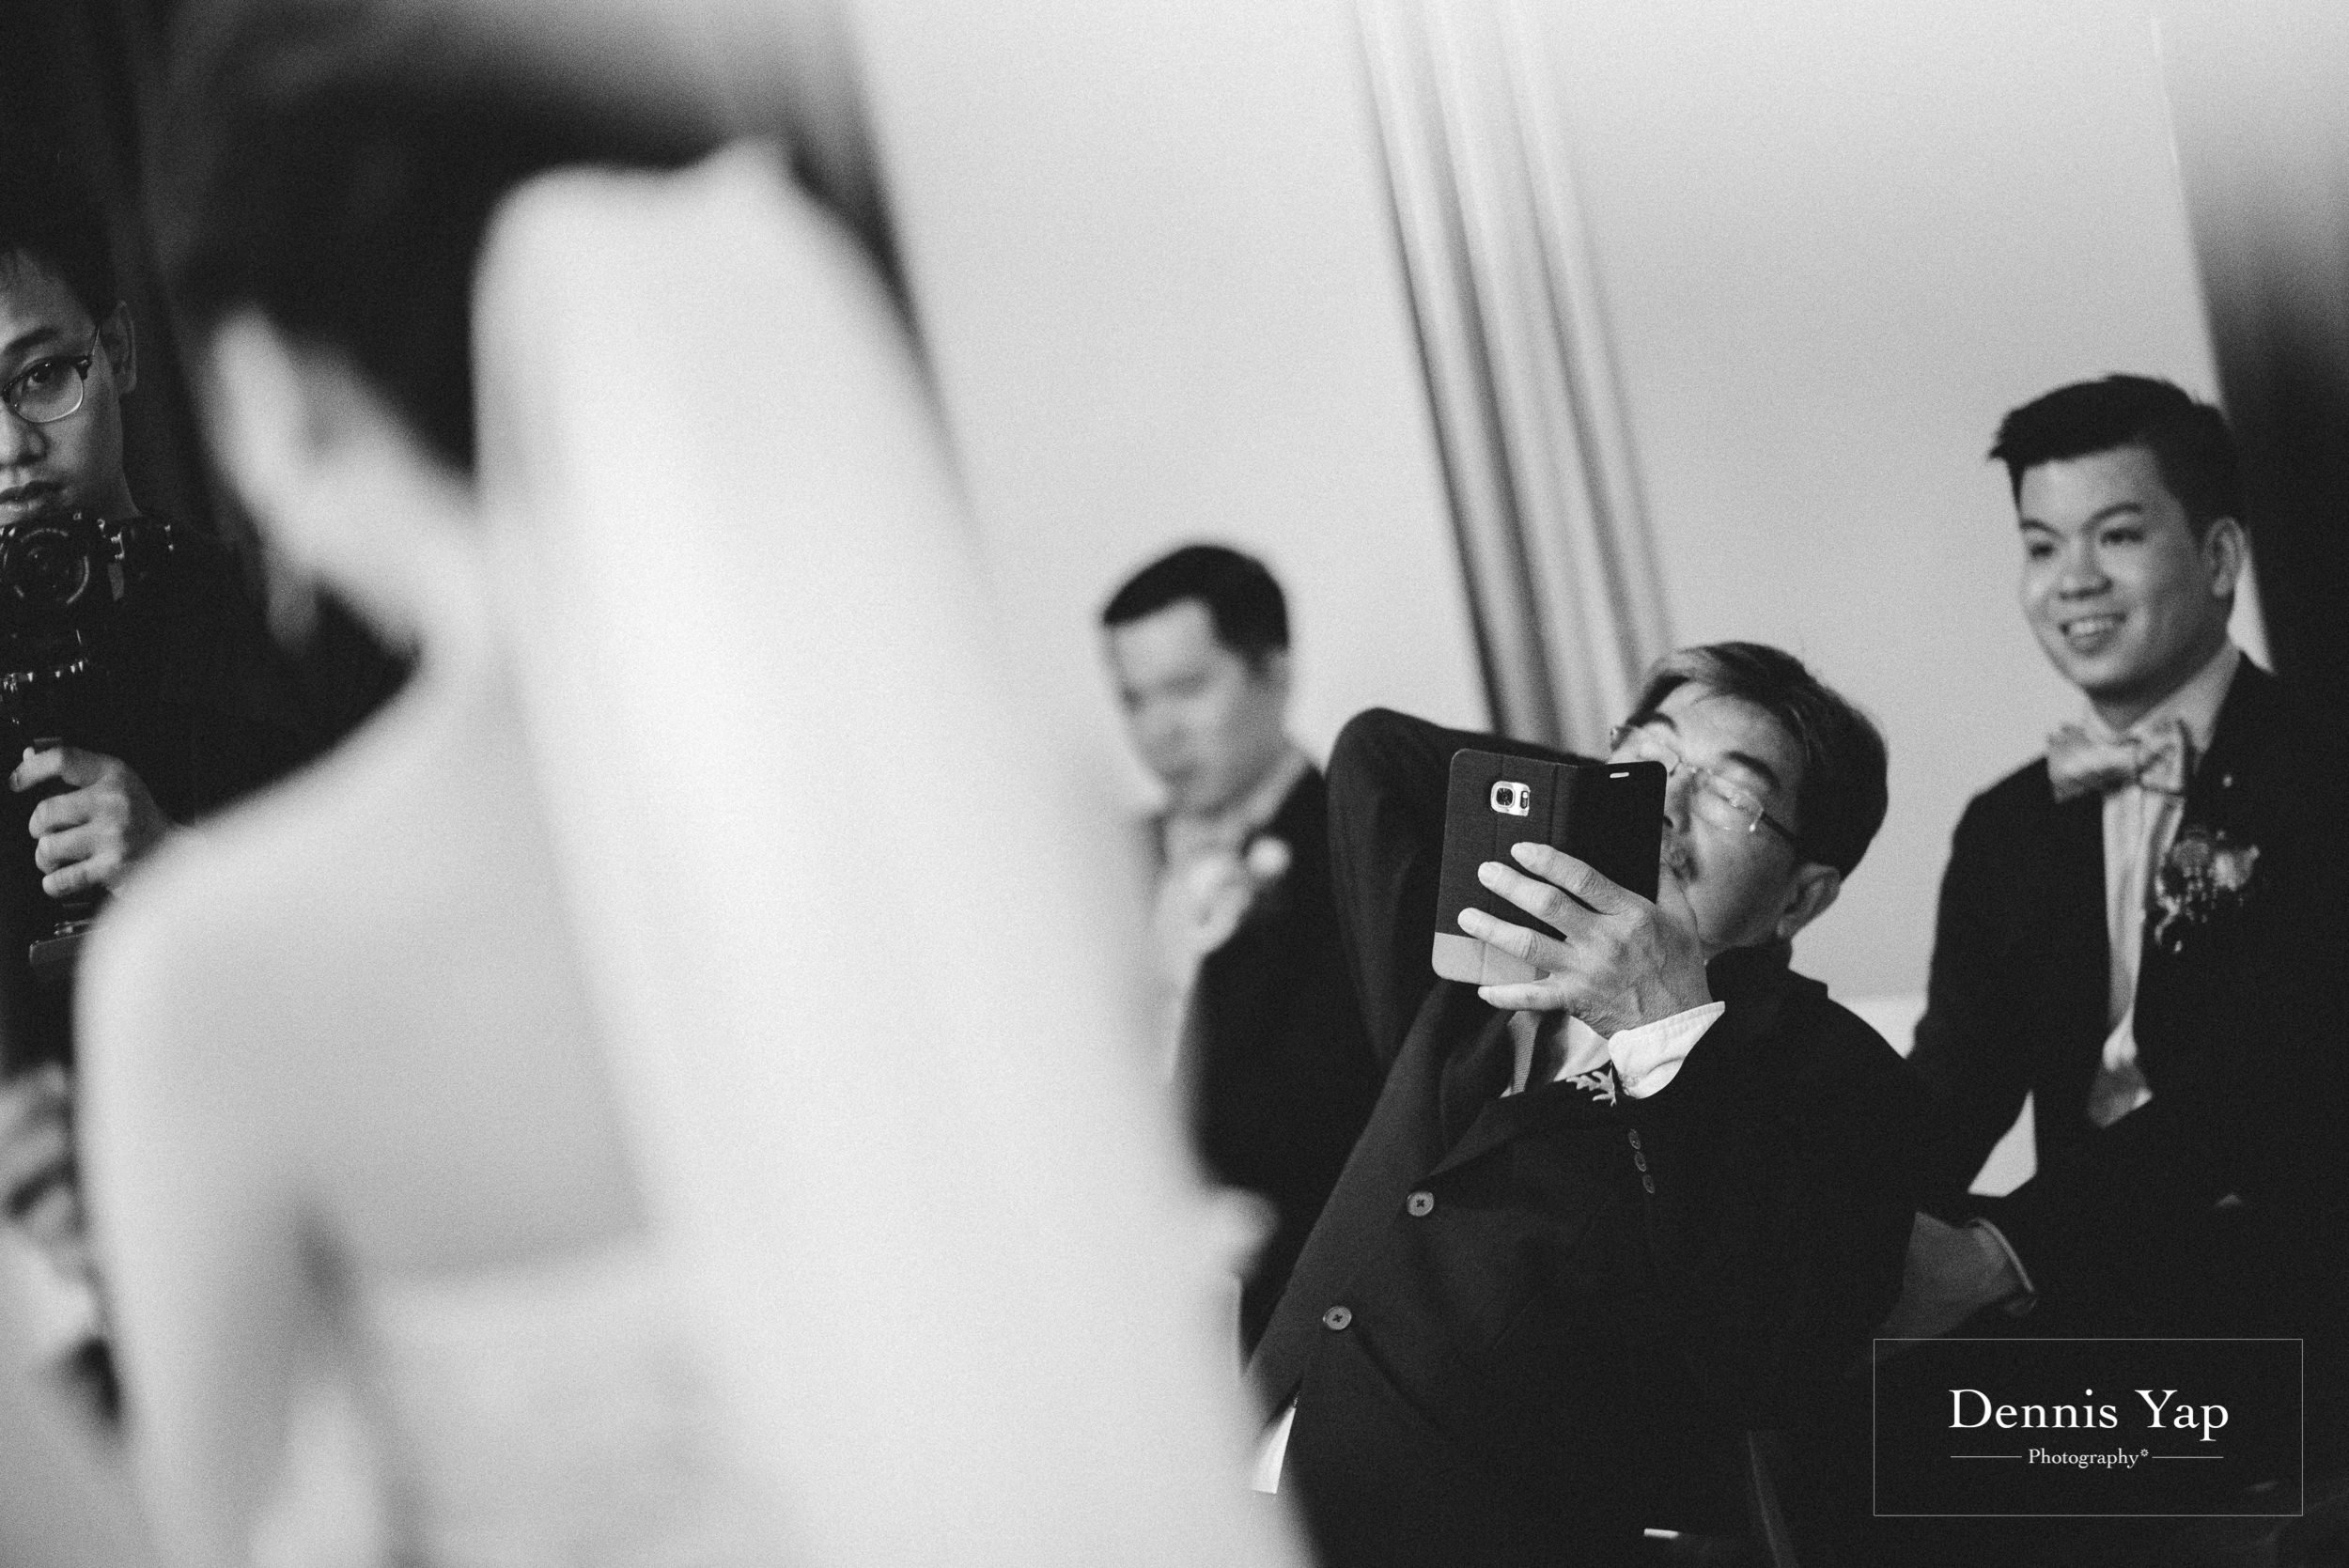 ser siang sze liang rom registration of marriage KL journal hotel dennis yap photography-19.jpg